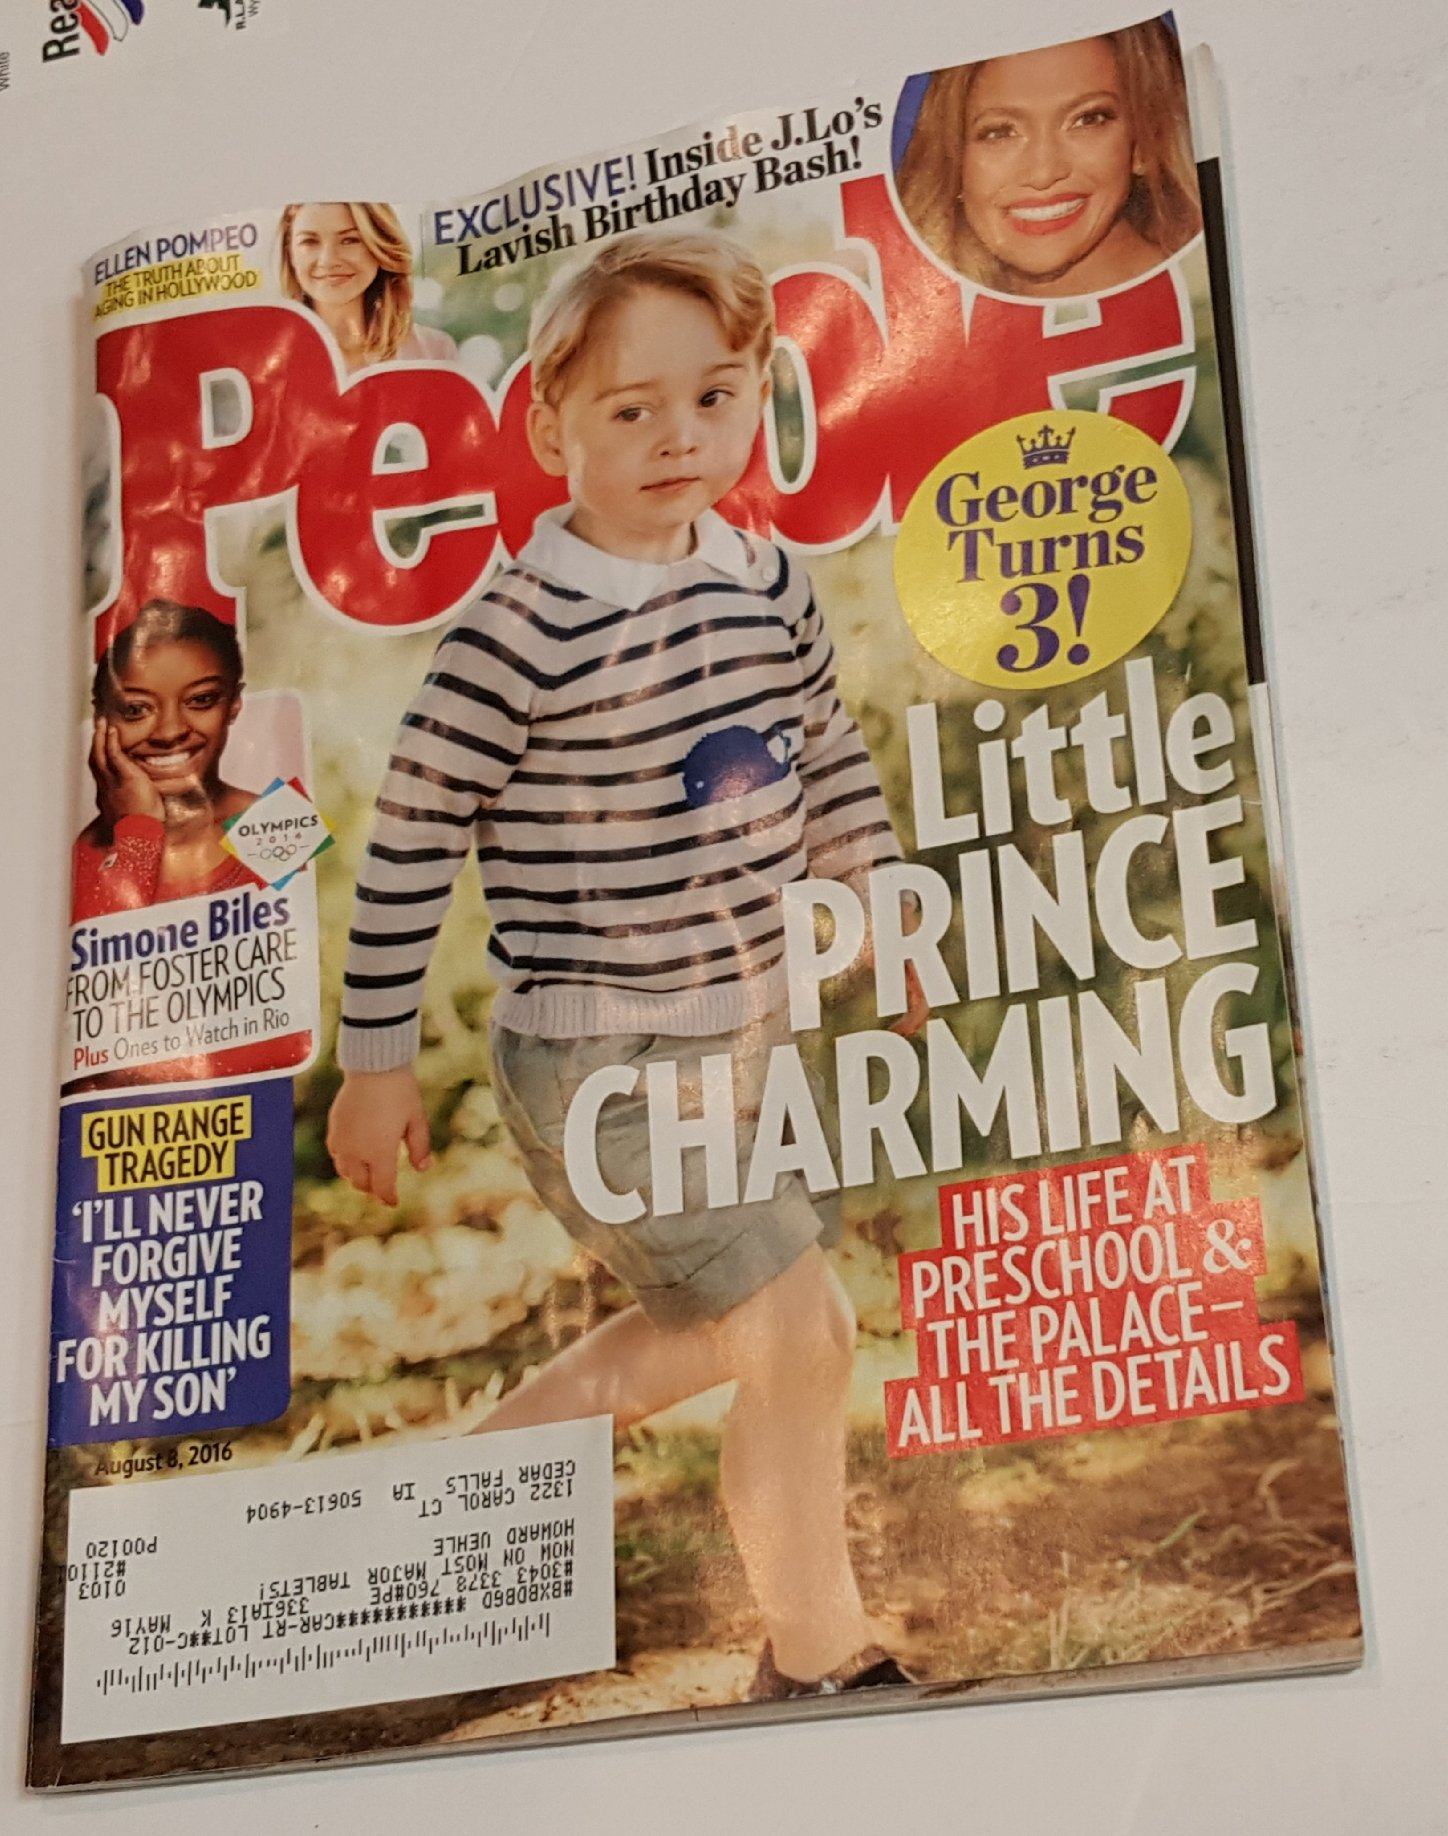 Download People Magazine August 8 2016  Little Prince Charming – George turns 3! pdf epub